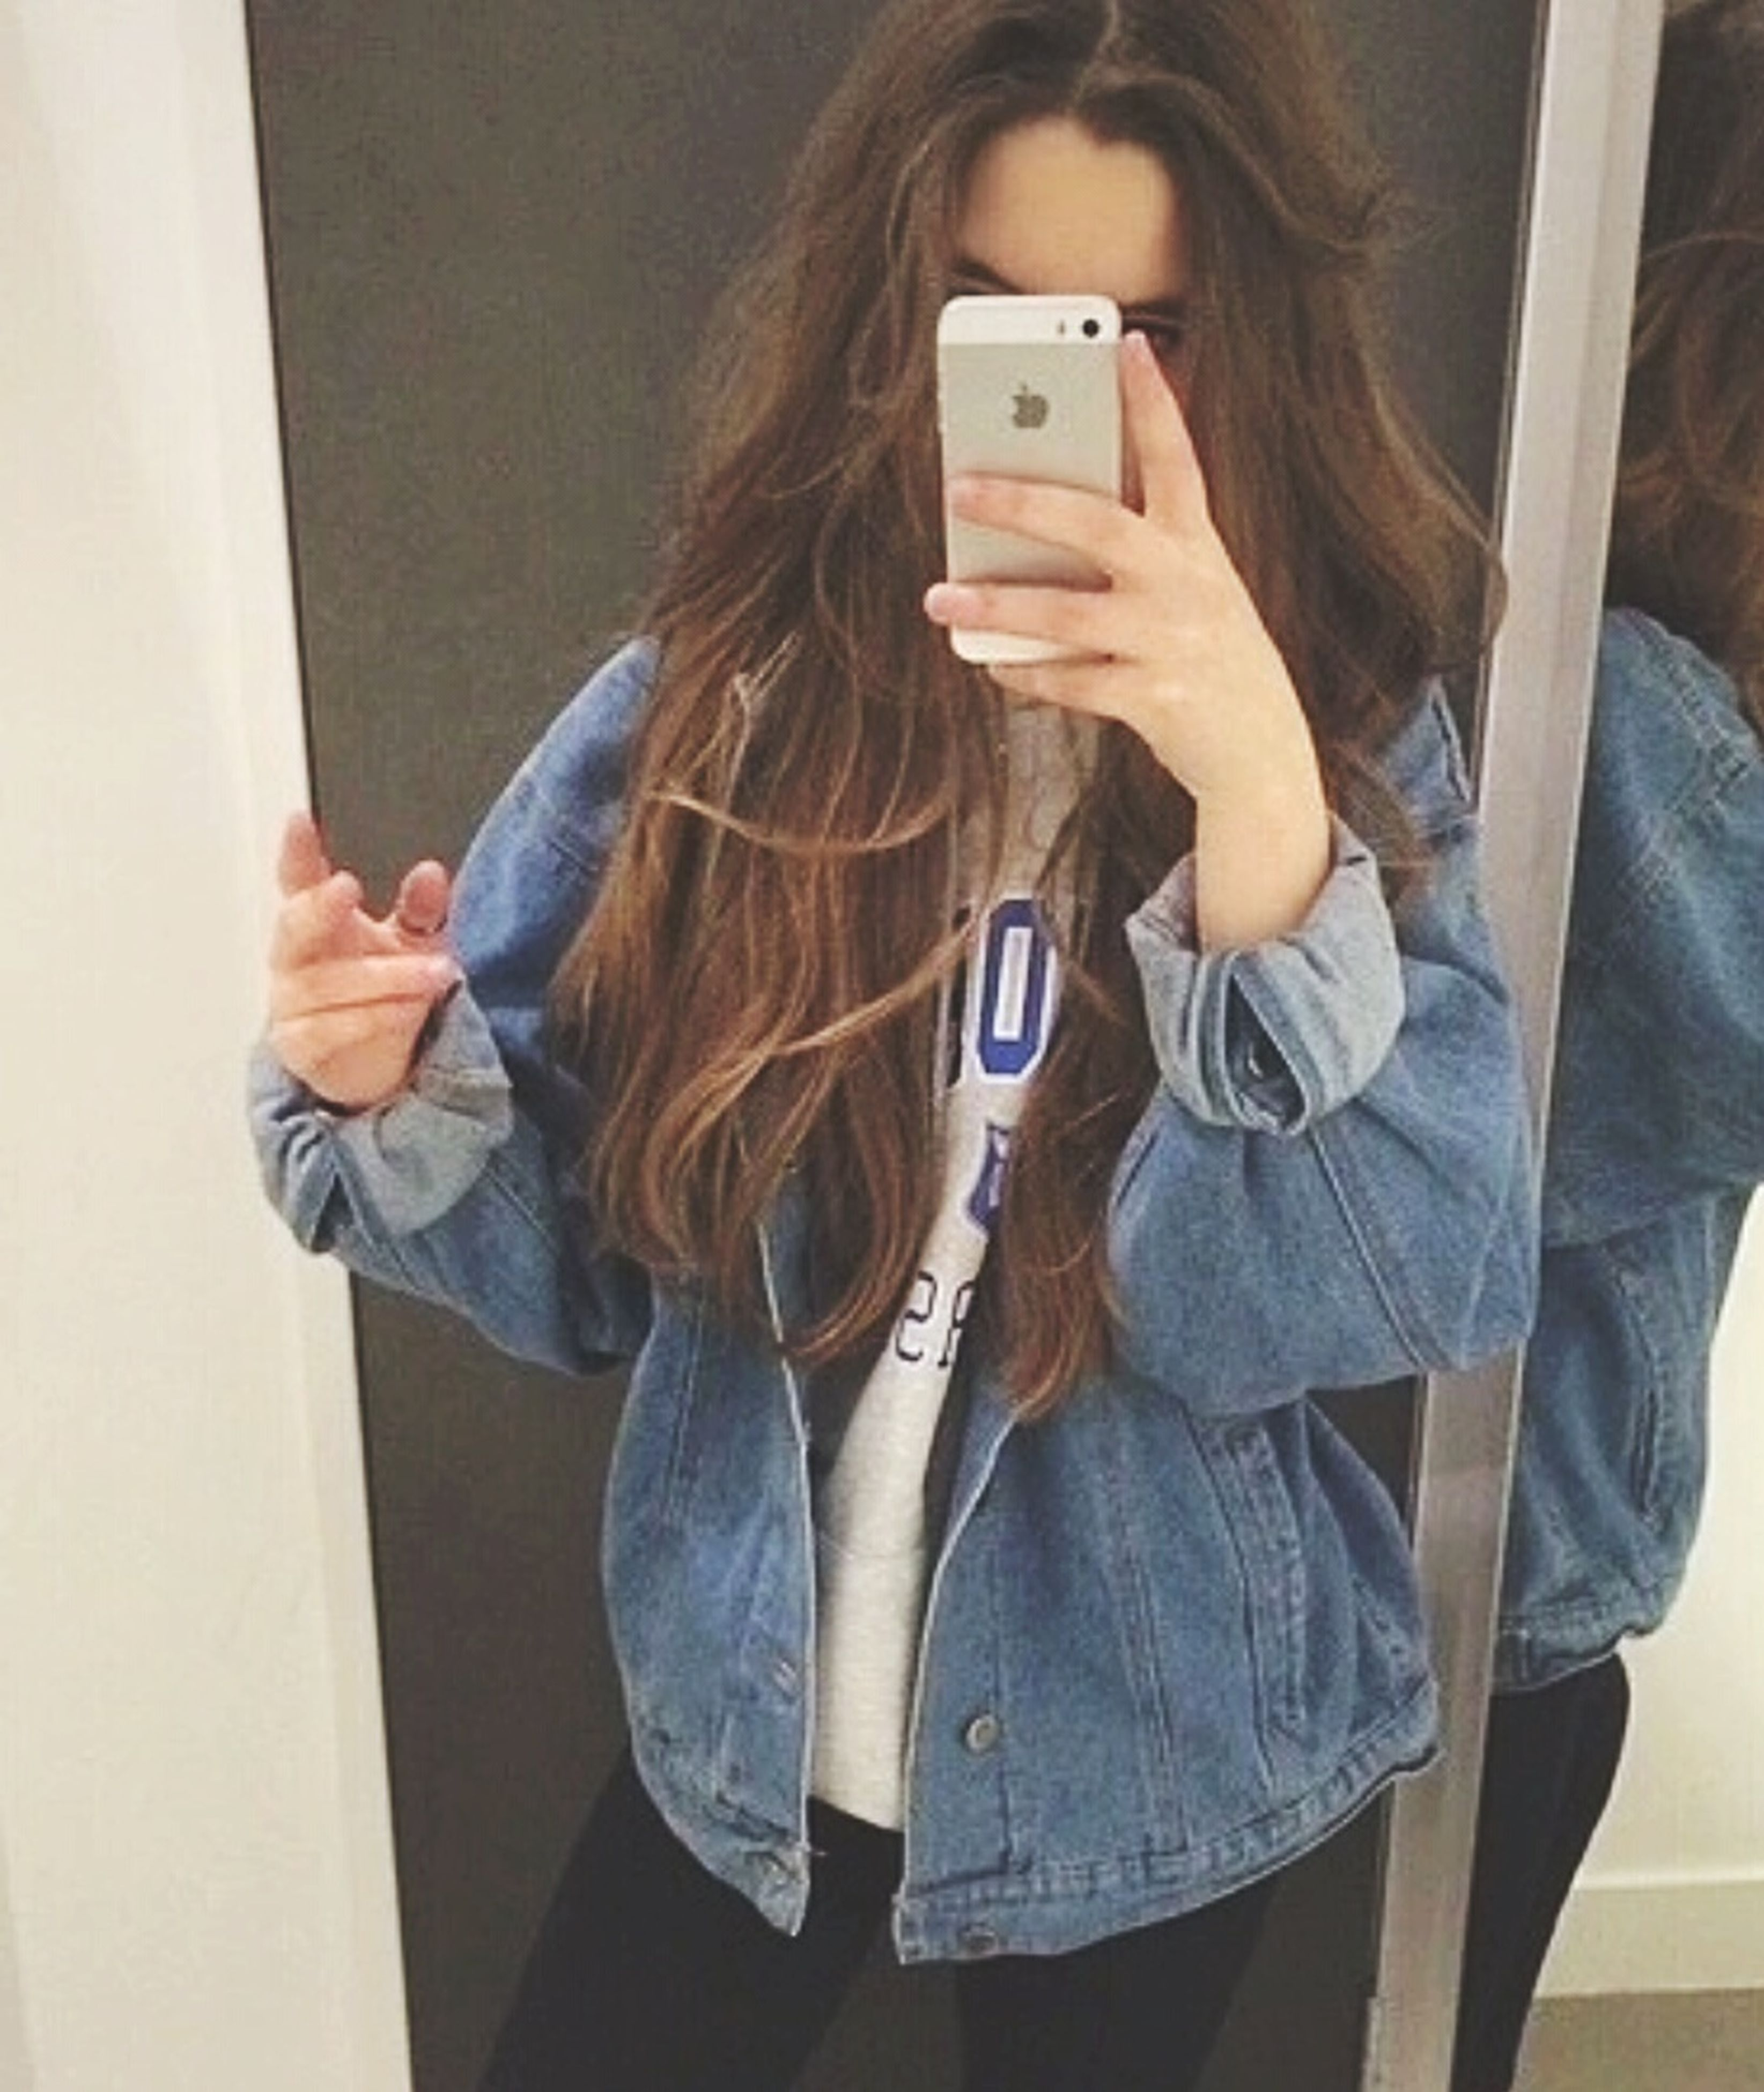 indoors, lifestyles, casual clothing, young adult, leisure activity, person, young women, holding, technology, long hair, standing, front view, three quarter length, wireless technology, wall - building feature, waist up, smart phone, home interior